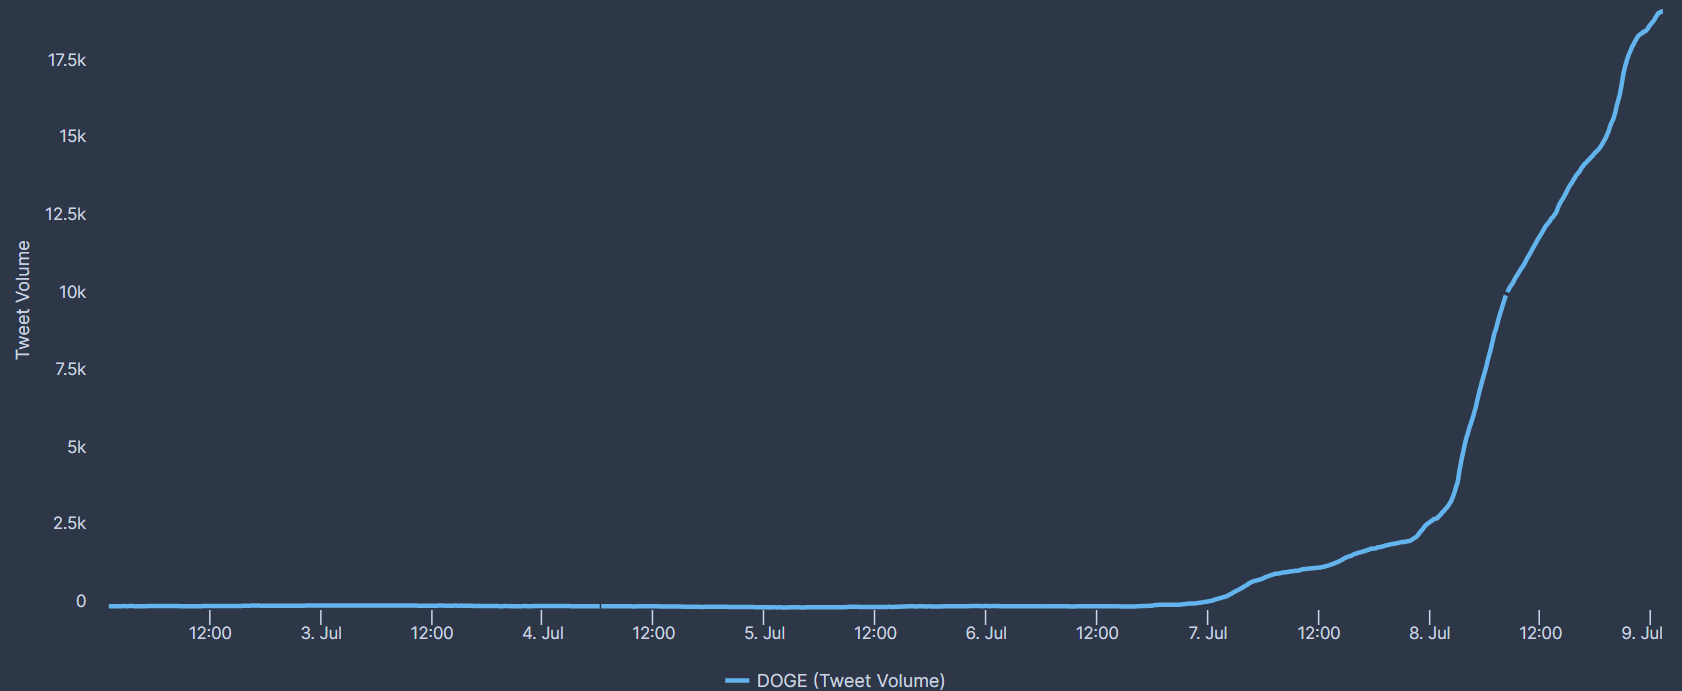 Dogecoin mentions on Twitter chart from 0 to 18,000